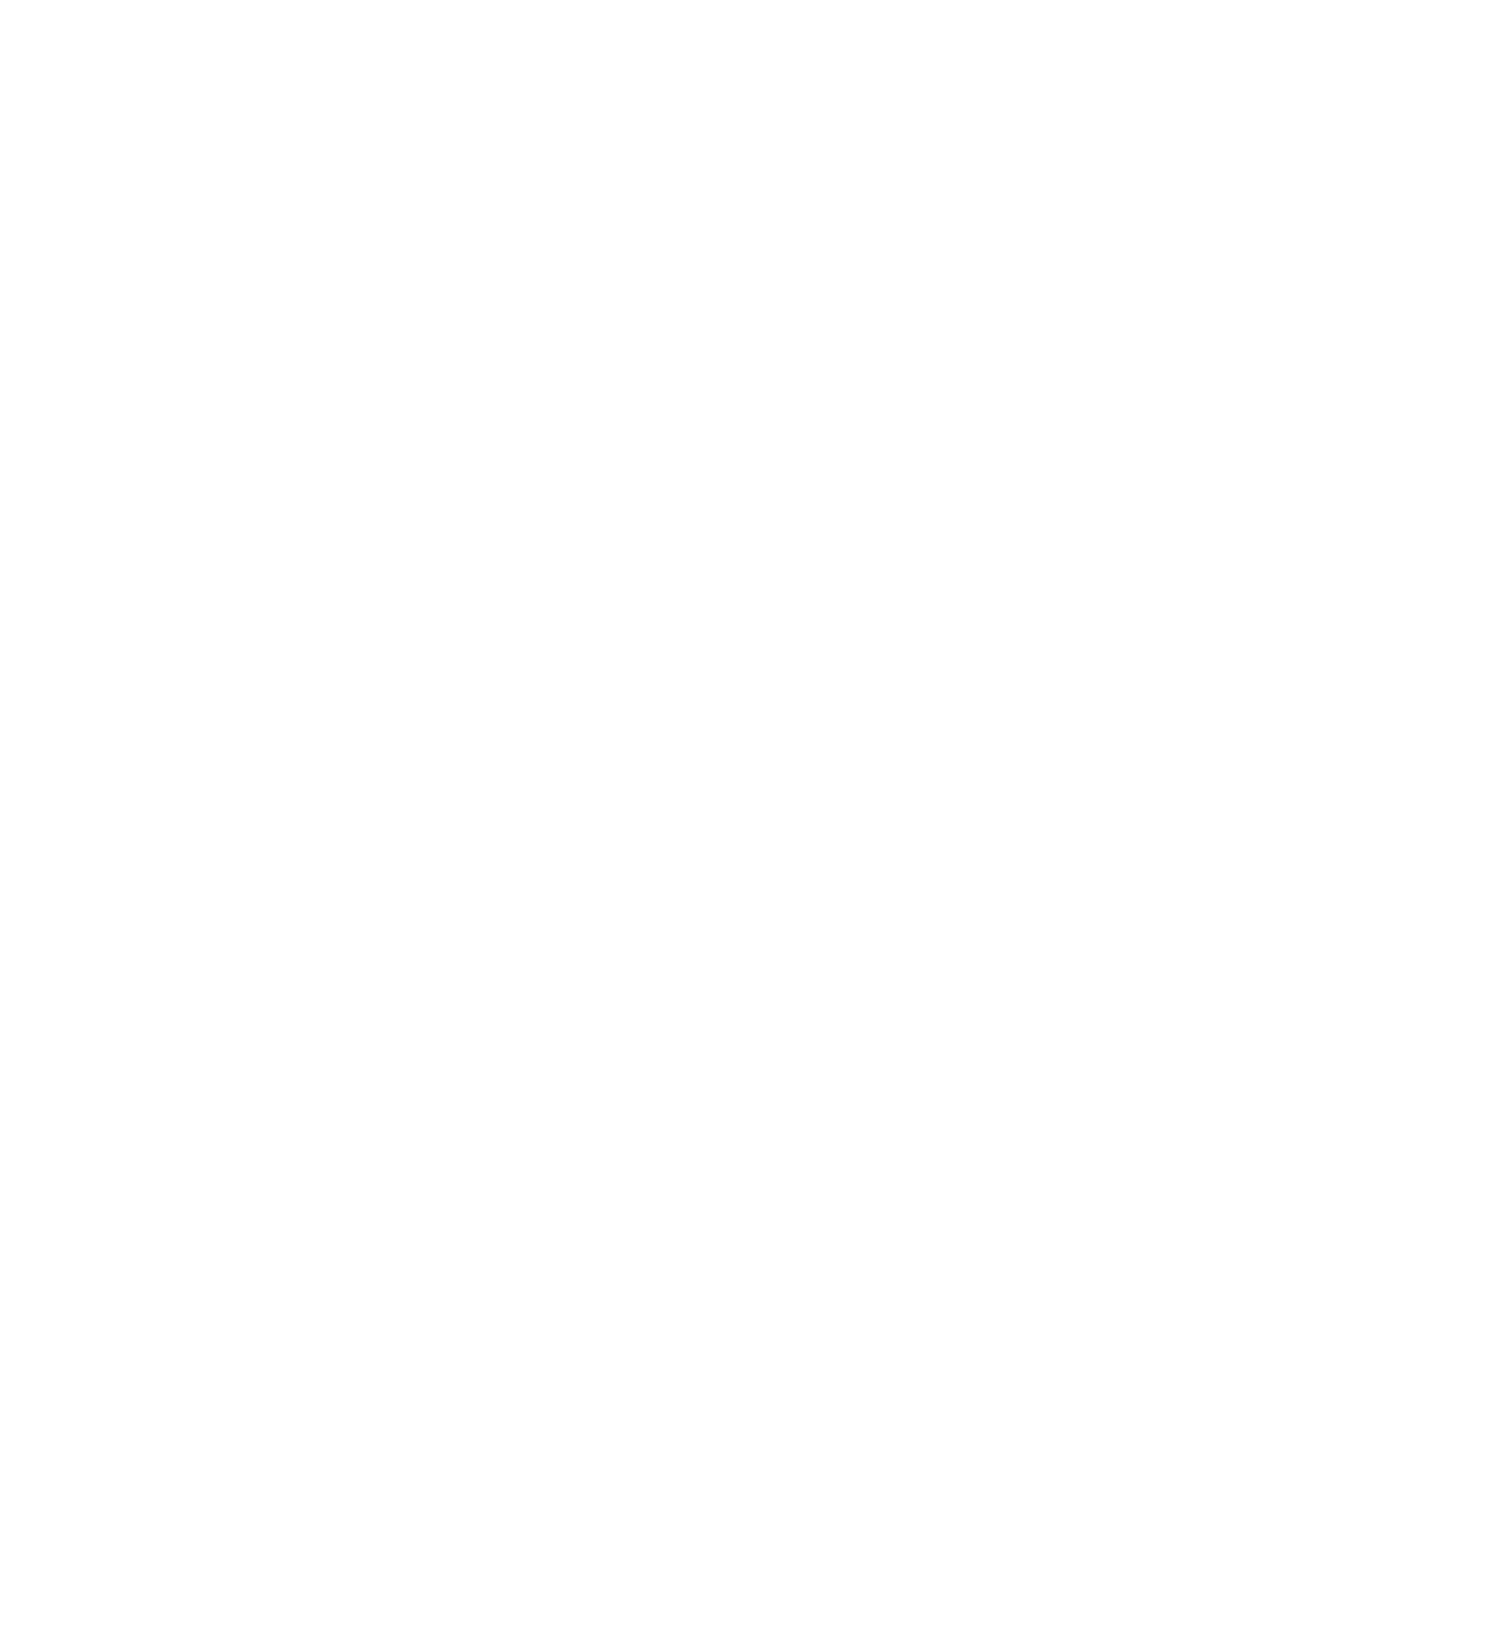 Cheetah Charity Runners